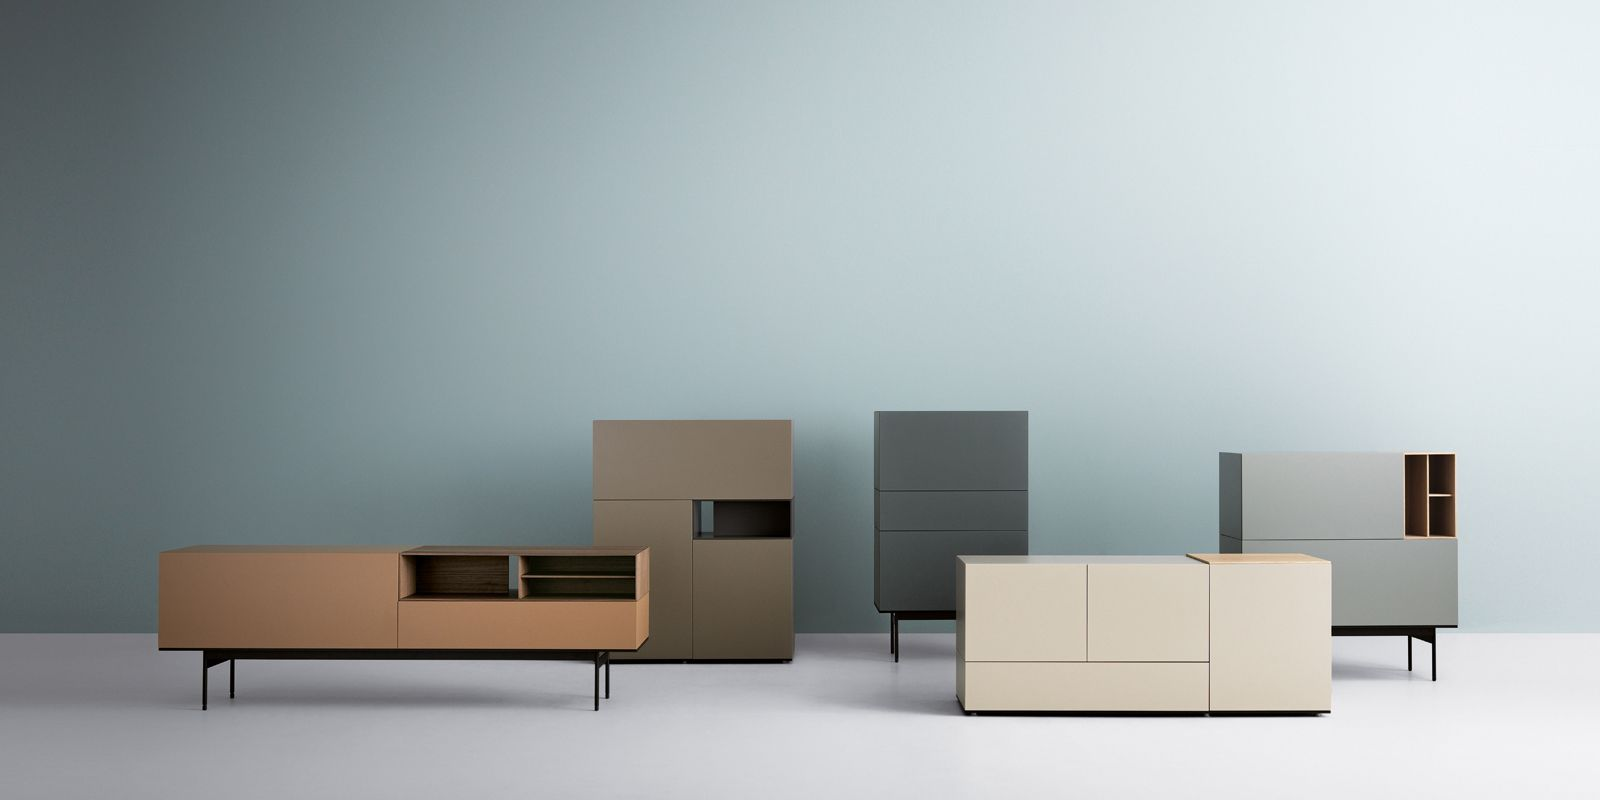 SYSTEM OF TRANSVERSAL STORAGE UNITS FOR THE DIFFERENT HOME